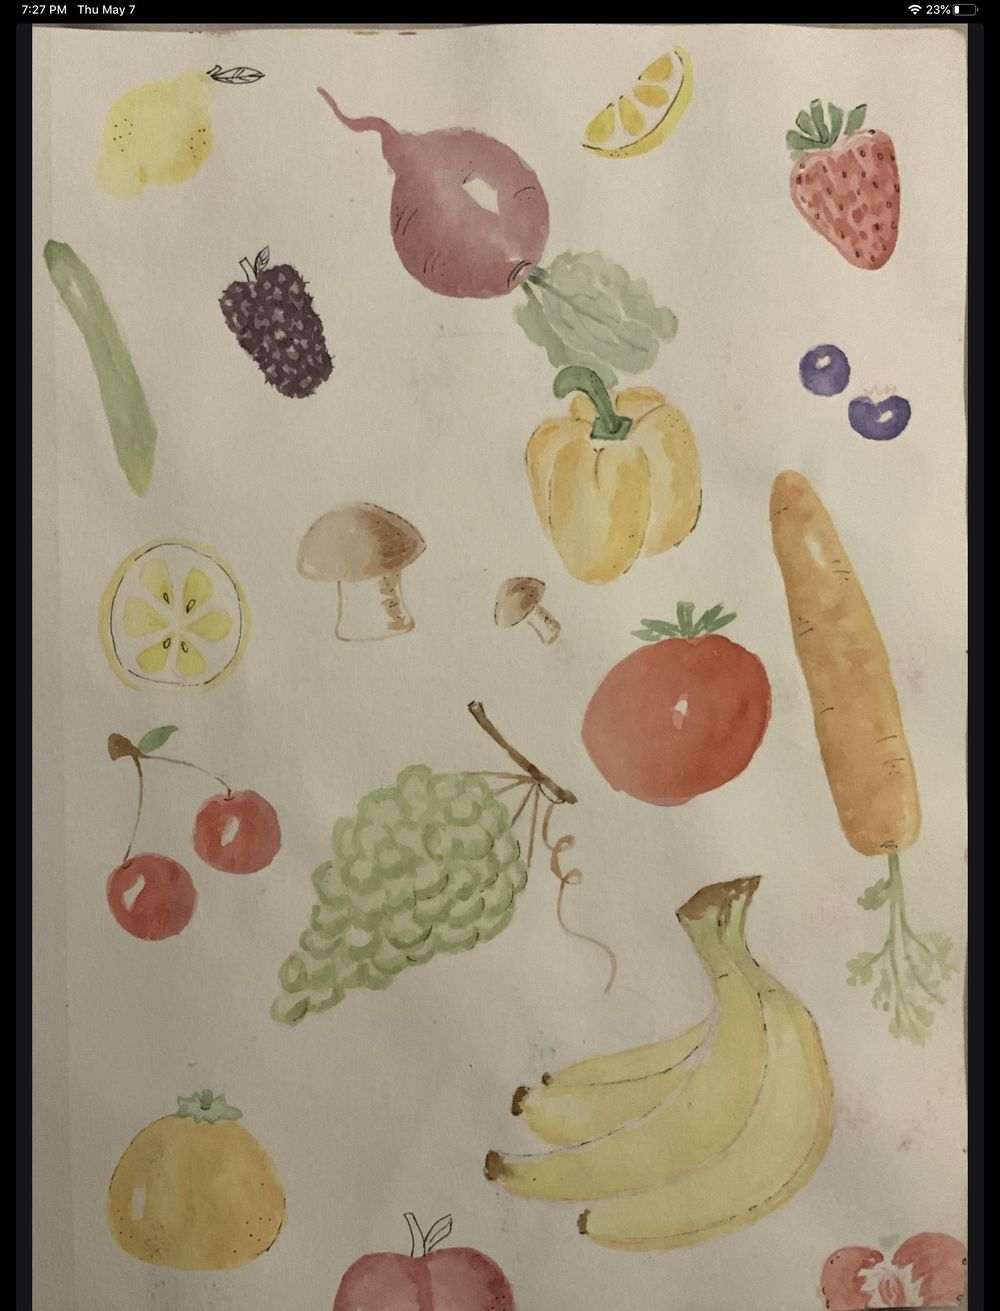 Fruits and veggies - image 1 - student project